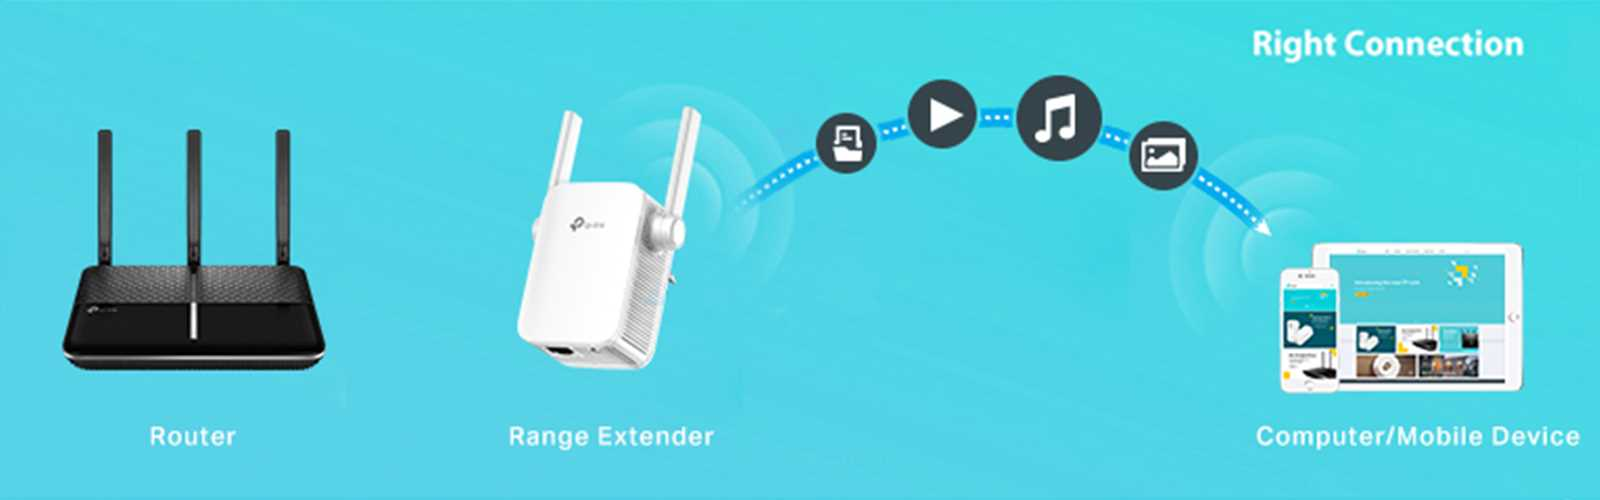 How to configure the TP-Link Repeater RE200 by using the WPS button?